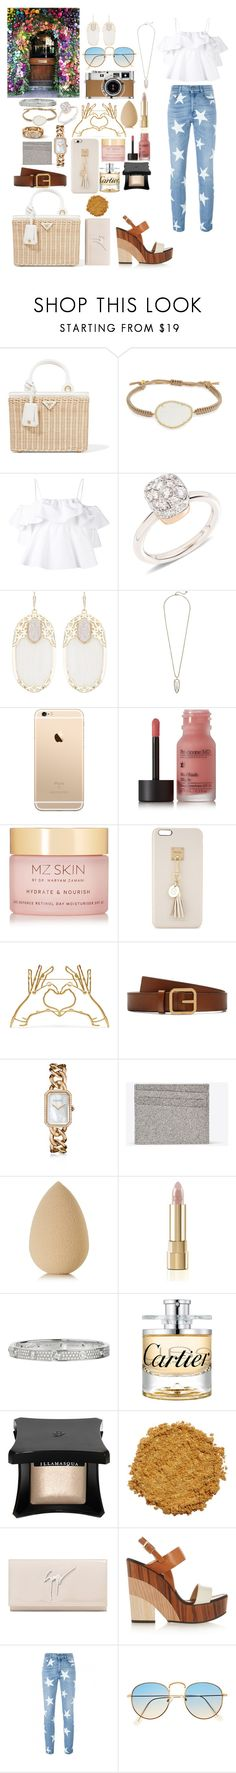 """Summer lovin"" by mylano ❤ liked on Polyvore featuring Prada, Tai, MSGM, Pomellato, Kendra Scott, Perricone MD, MZ Skin, Iphoria, Mulberry and Chanel"